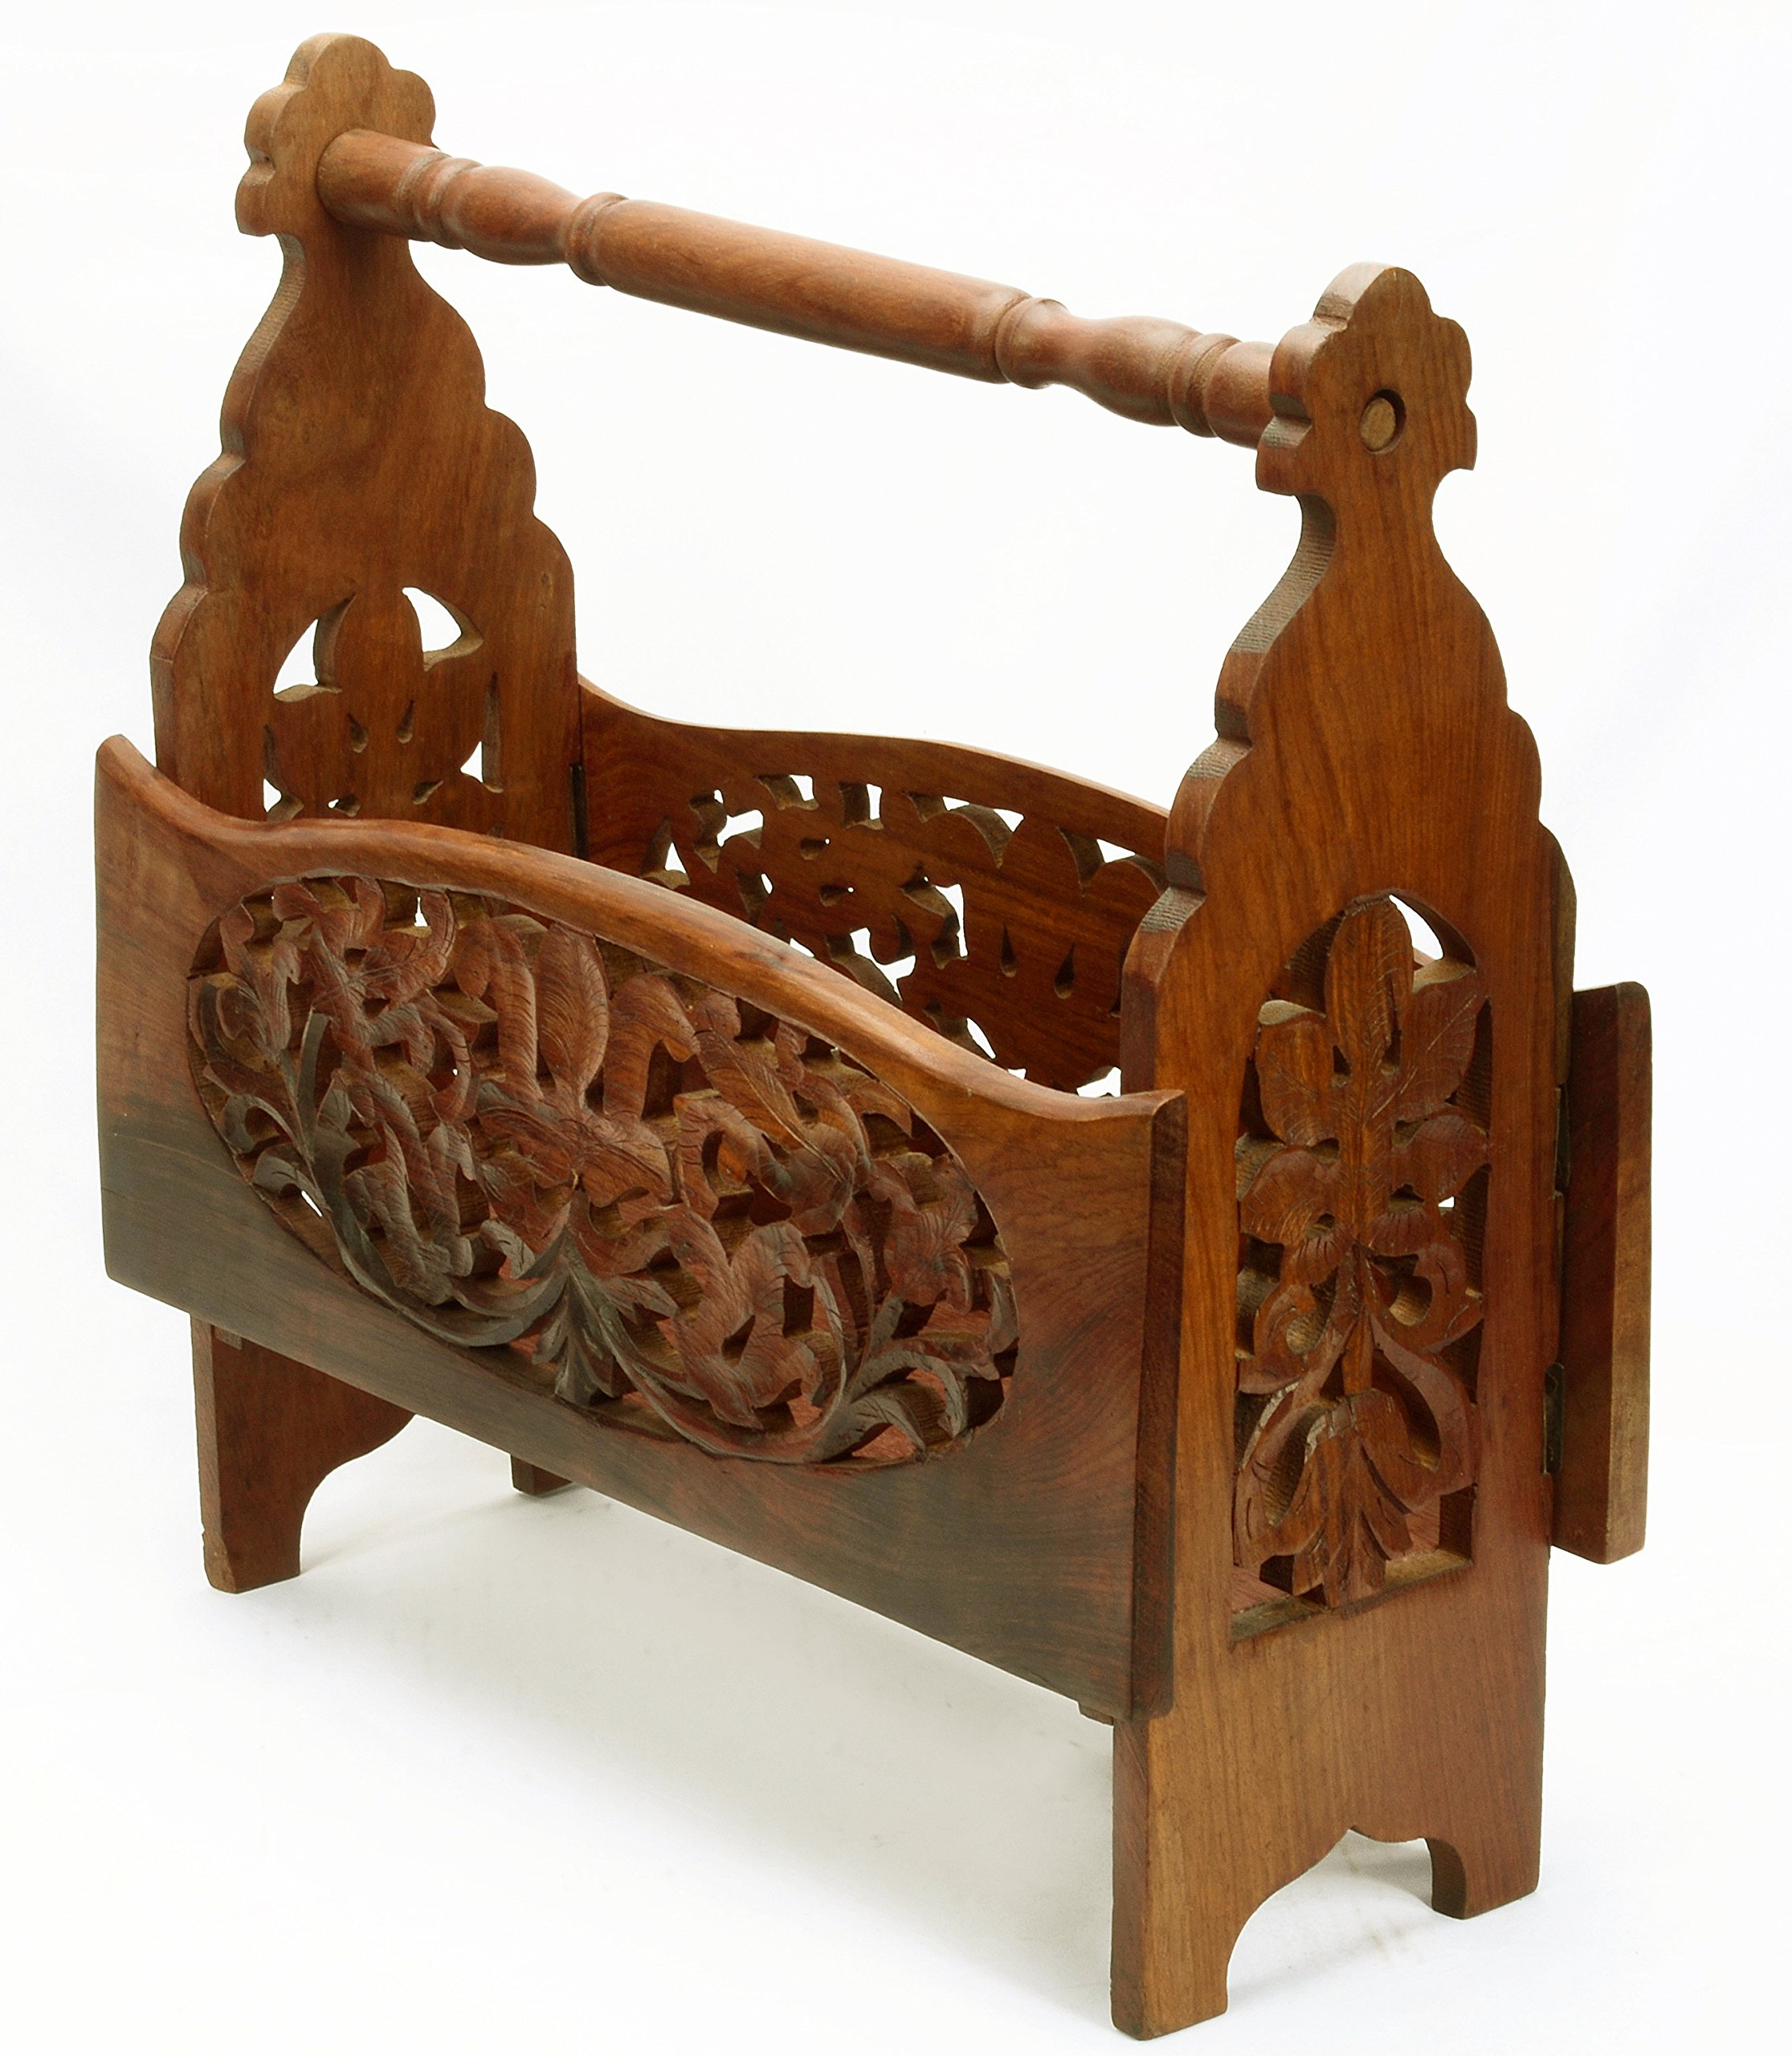 Vtg Style Foldable Ornate Carved Wood Magazine Stand India Craft Gift Décor 15''H